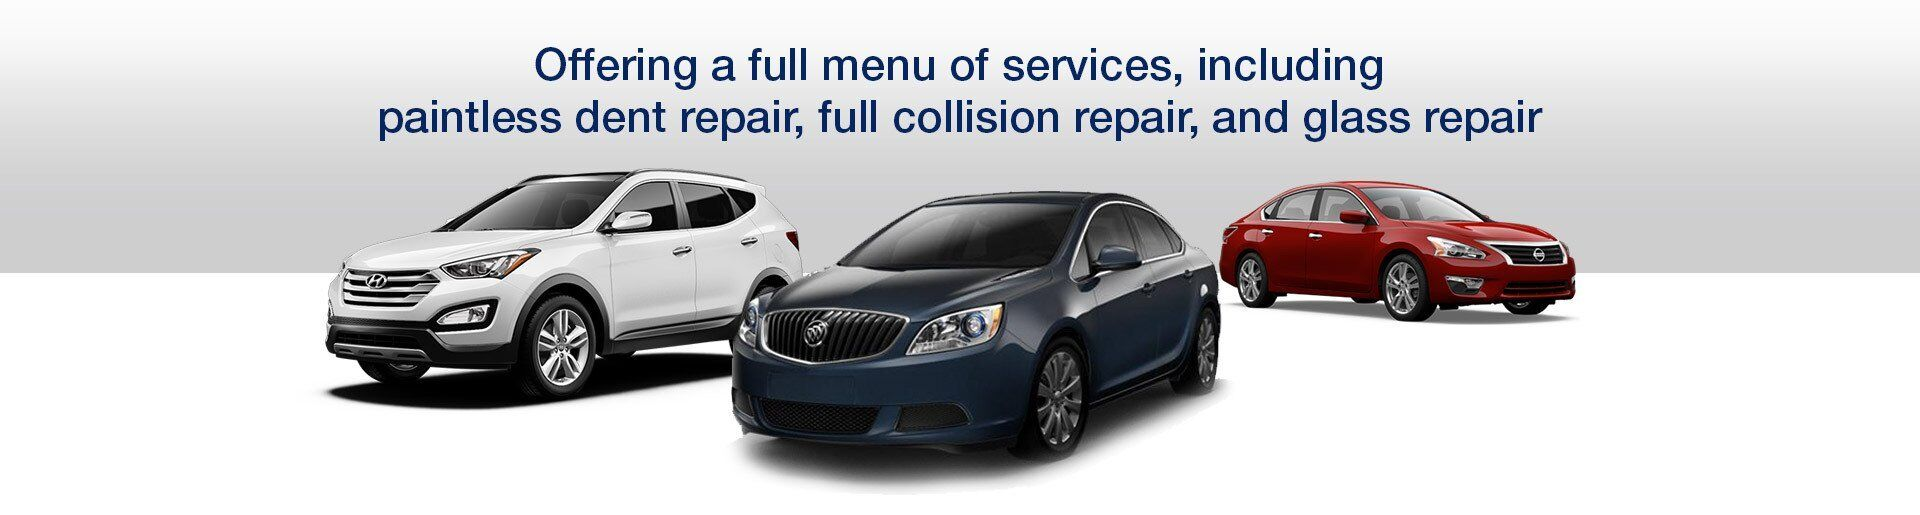 zimbrick body shop and collision center madison wi